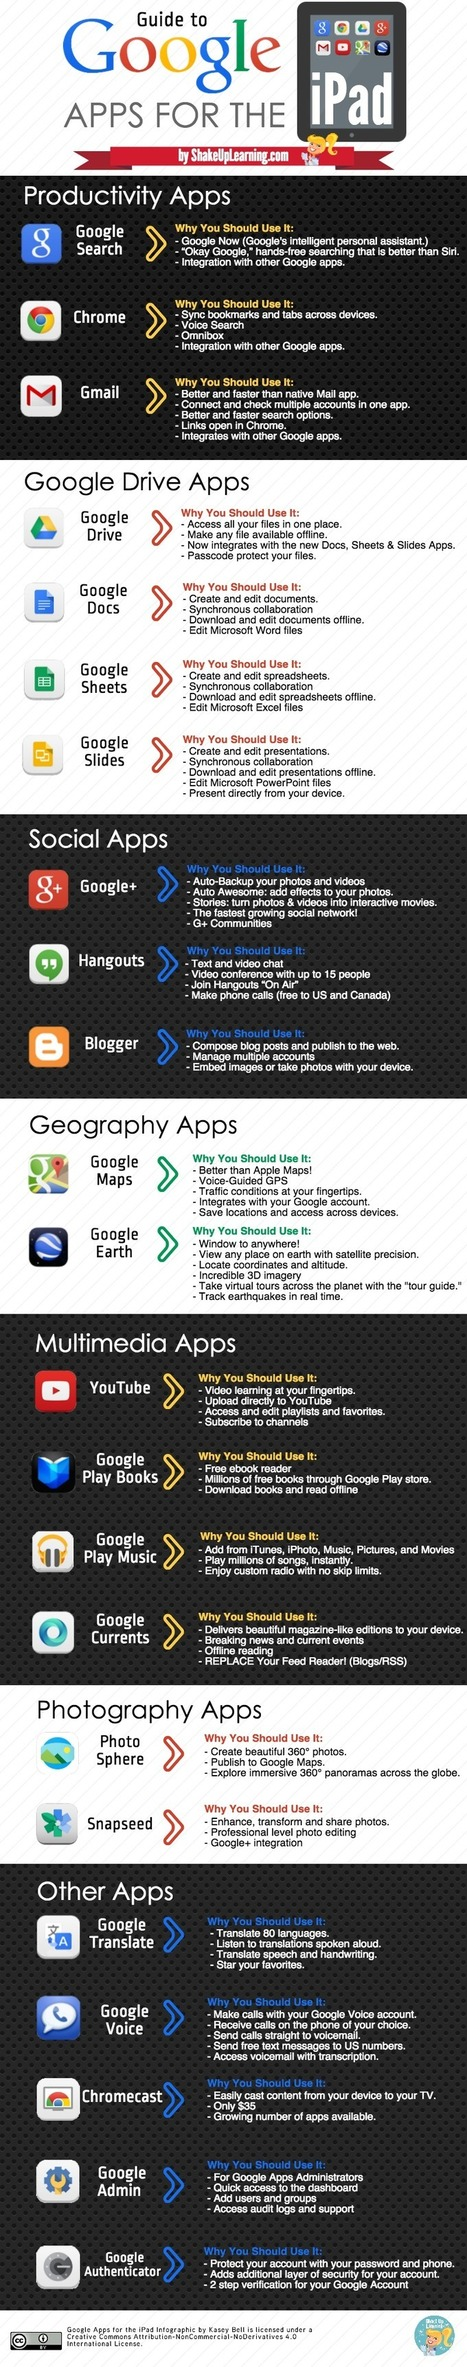 Guide to Google Apps for the iPad - Infographic | Muskegon Public Schools Tech News | Scoop.it